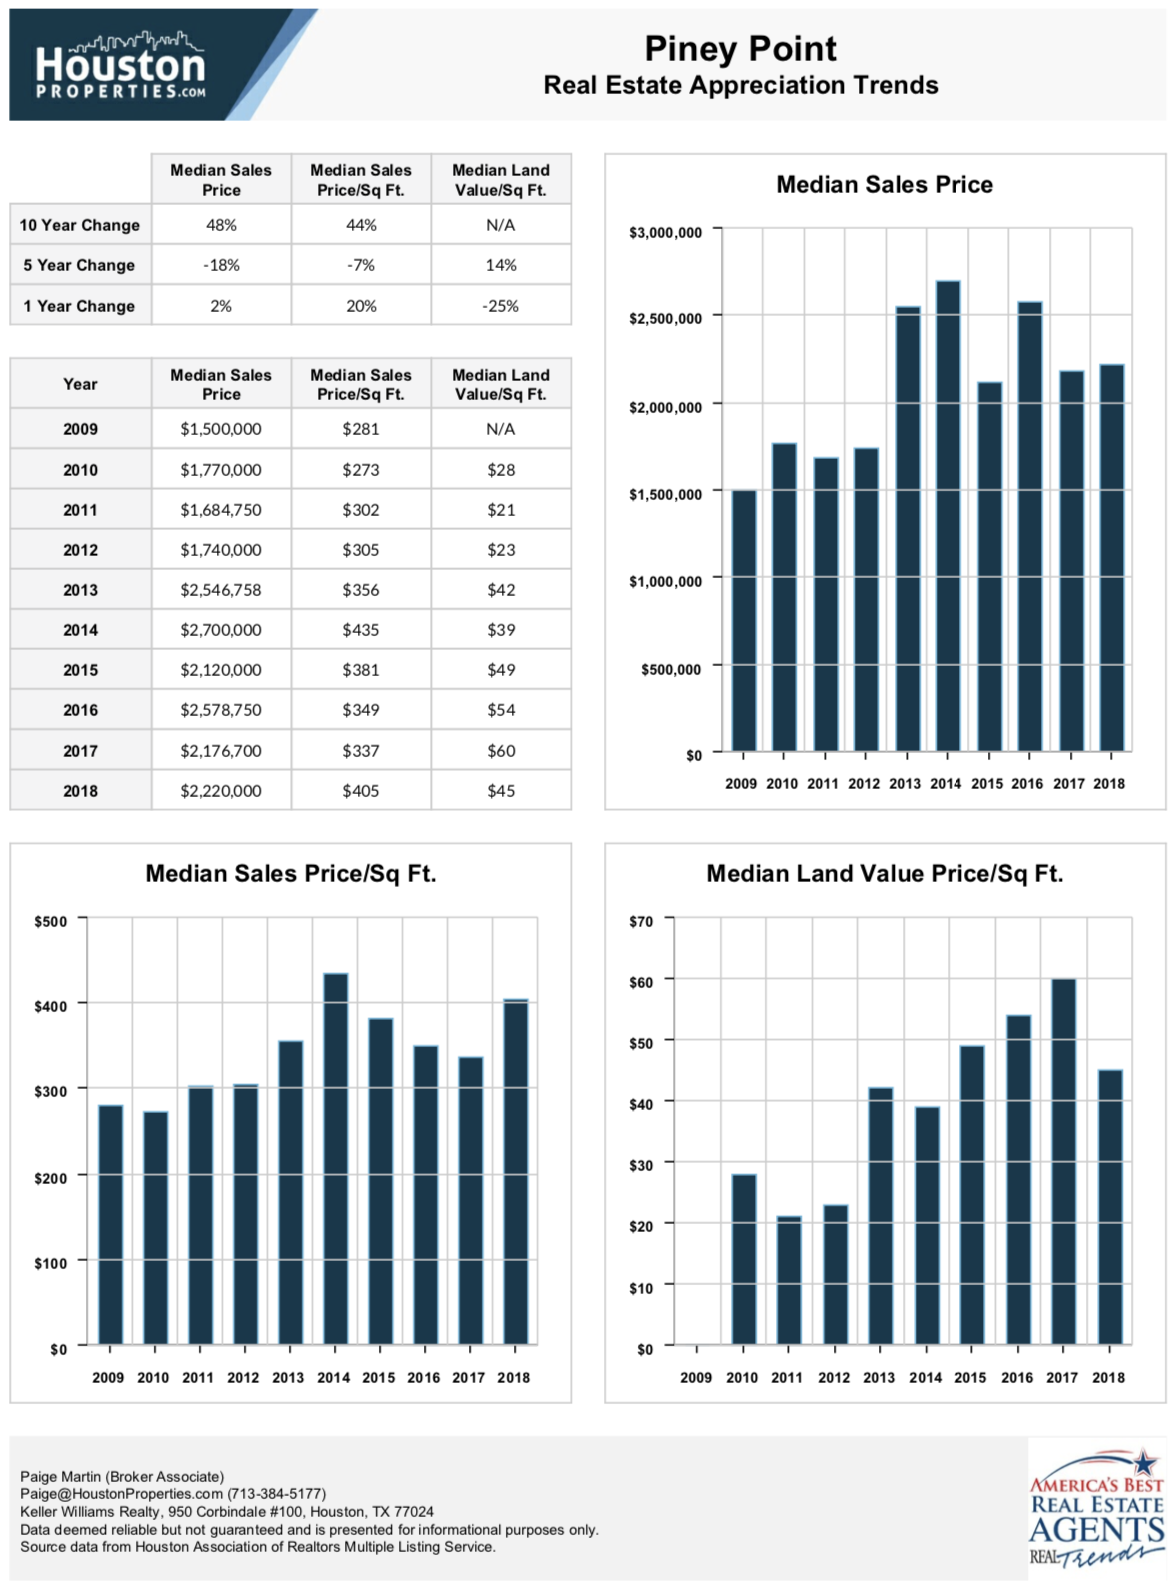 Piney Point 10 Year Real Estate Appreciation Rates